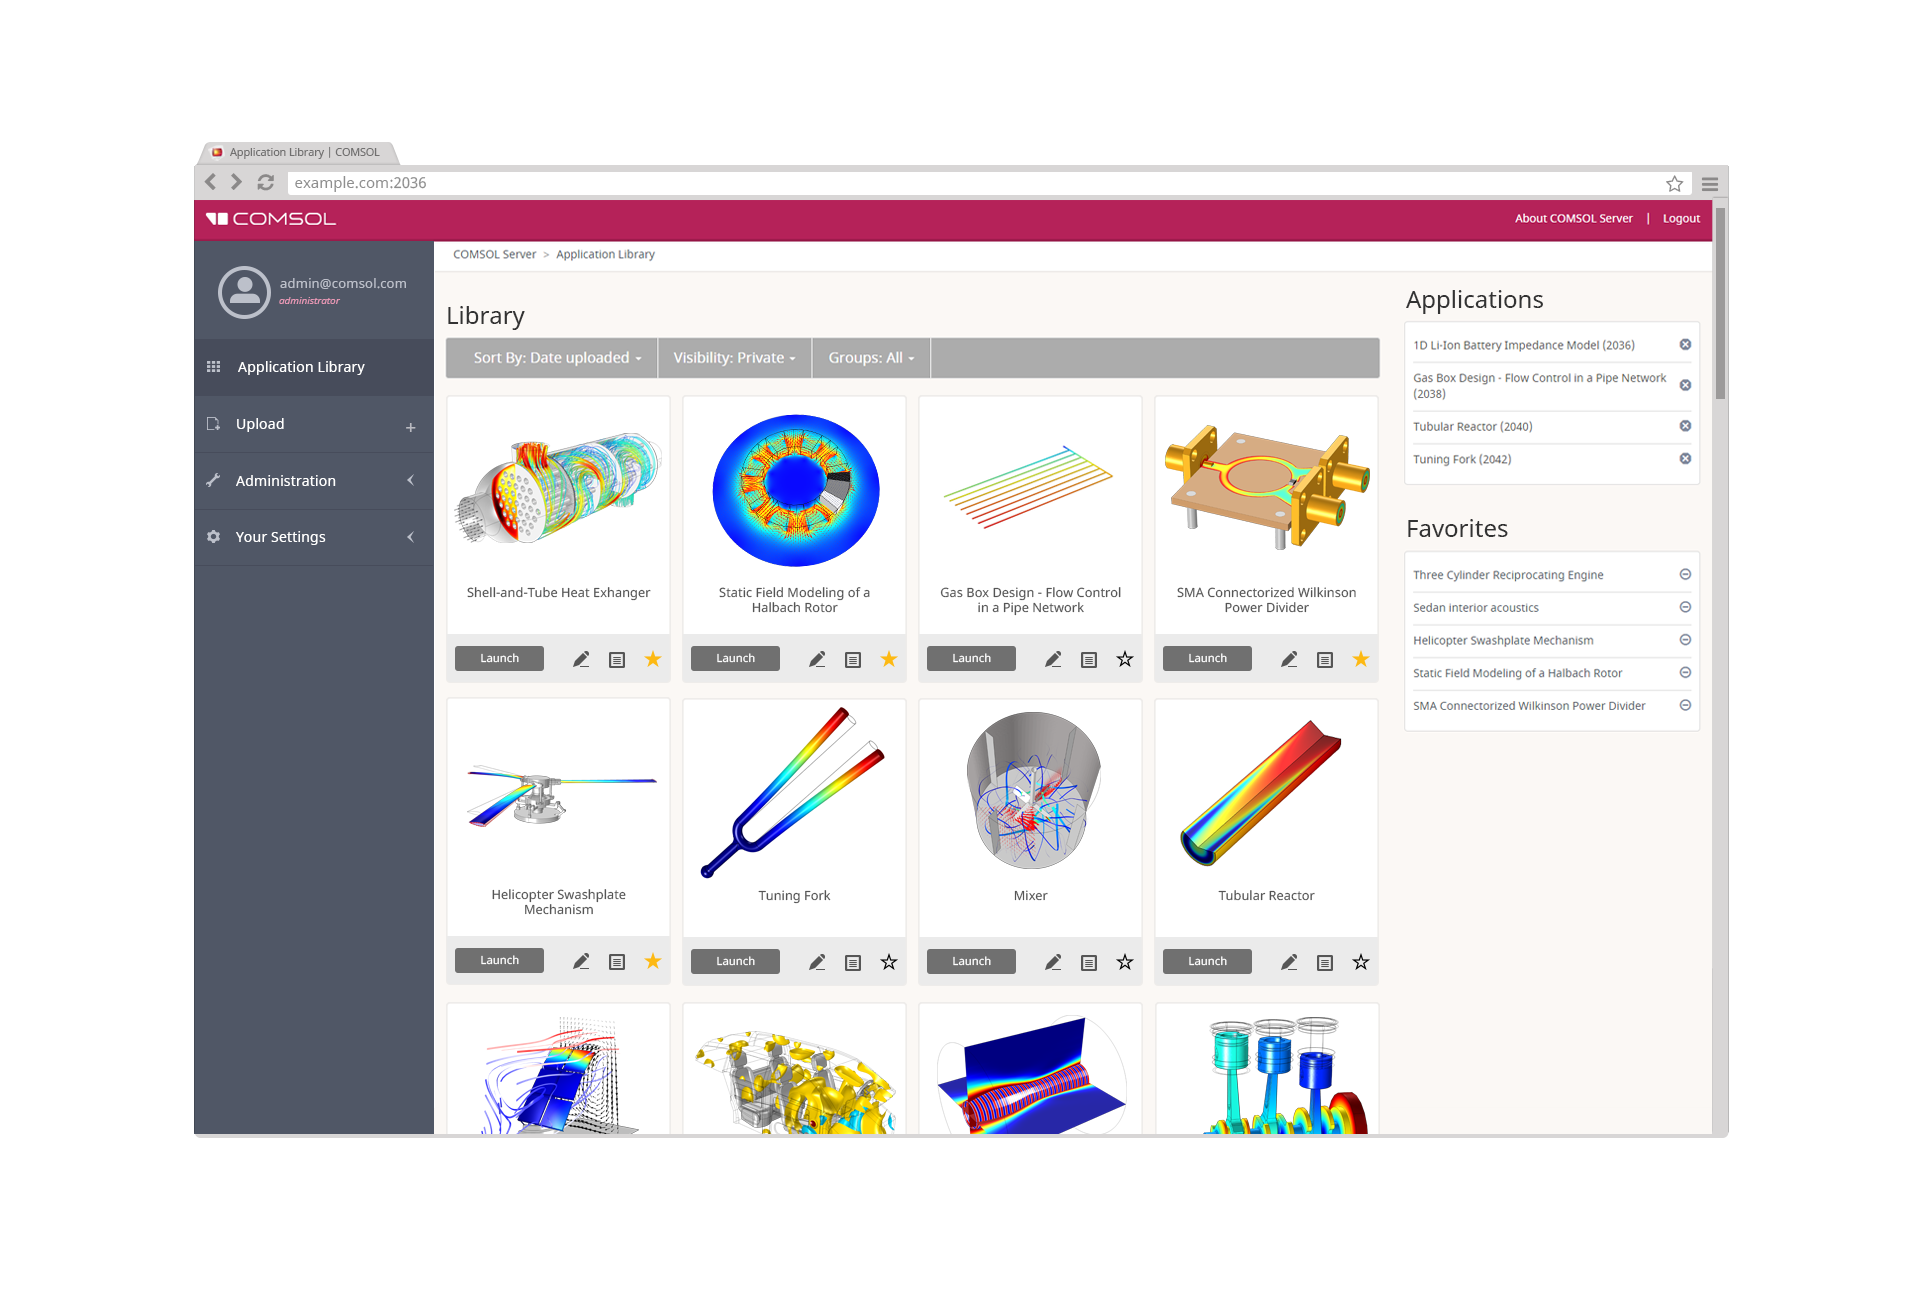 The dashboard and Application Library in the COMSOL Server™ web interface. From the app icon, you can launch an application, make it one of your favorites, and edit permissions. The dashboard also lets you view the apps that are already running as well as monitor CPU and memory usage.